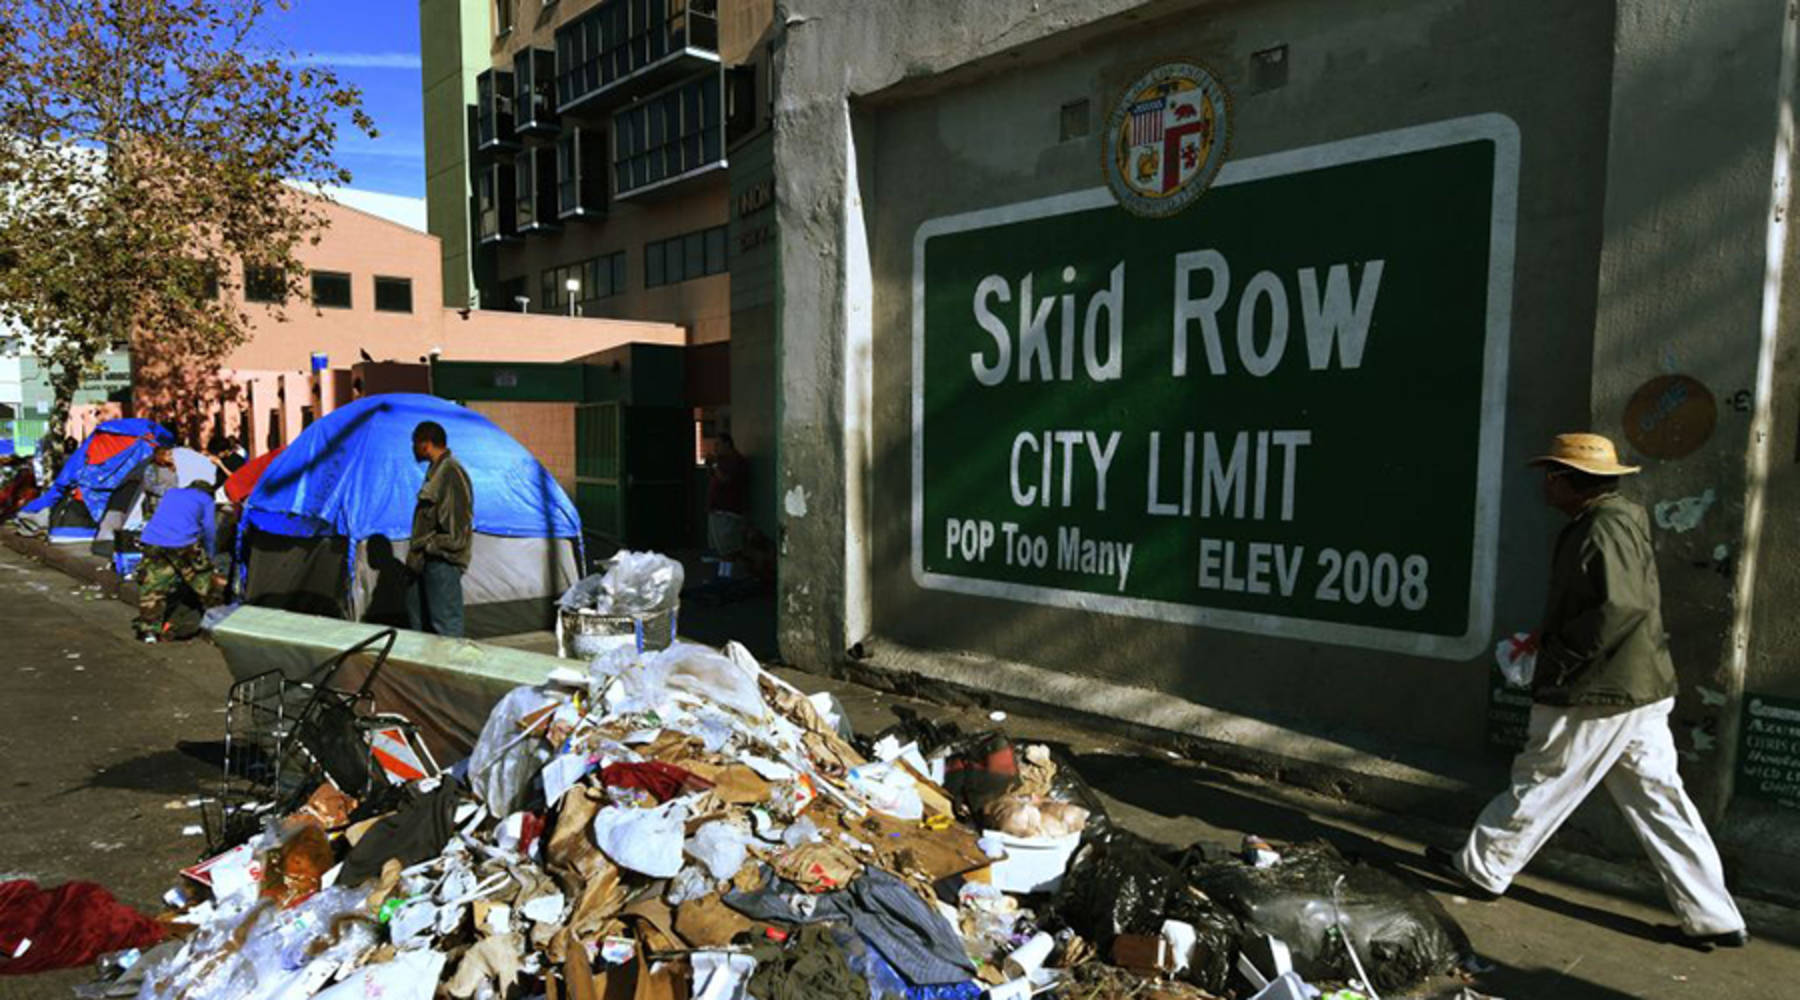 Los Angeles struggles to house homeless amid Section 8